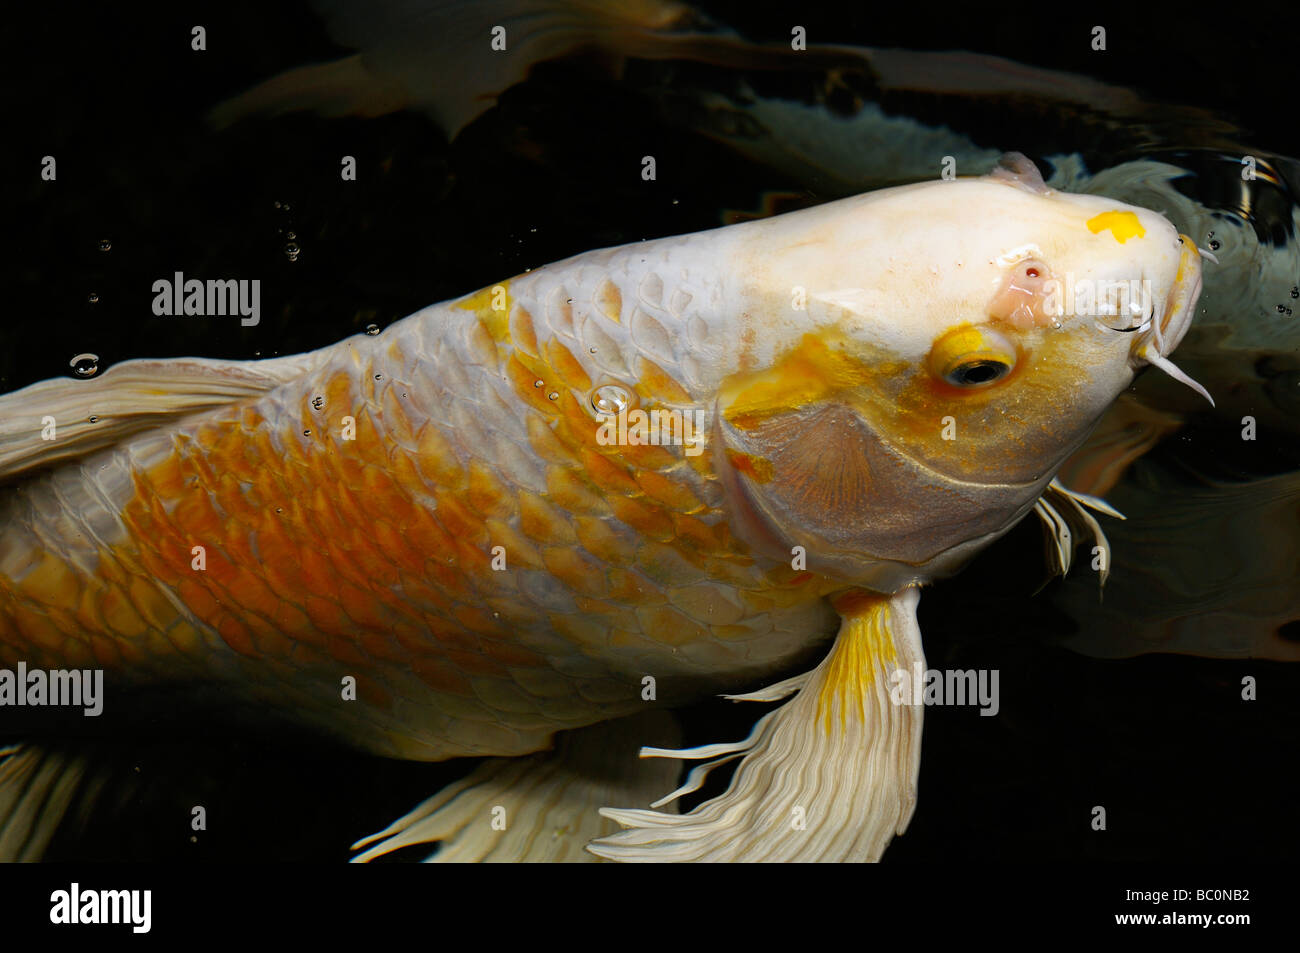 White and yellow yamabuki hariwake butterfly koi fish for Koi hariwake